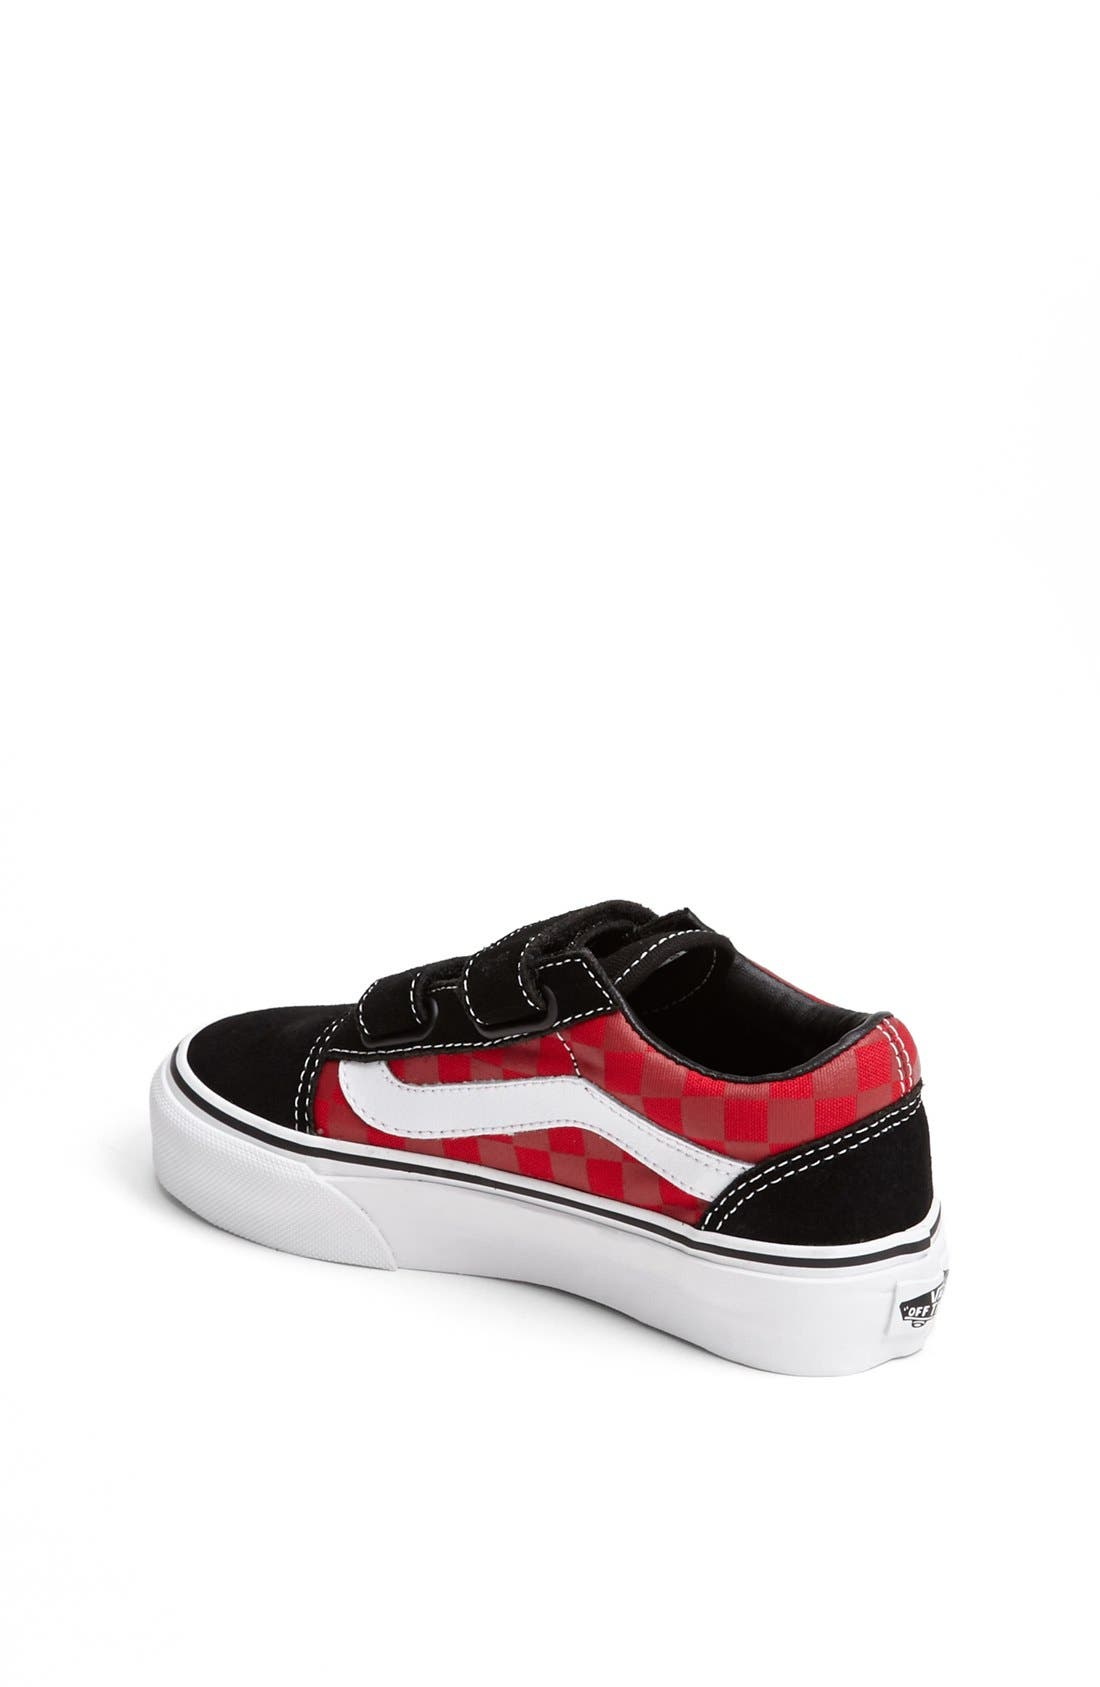 Alternate Image 2  - Vans 'Old Skool' Sneaker (Toddler)